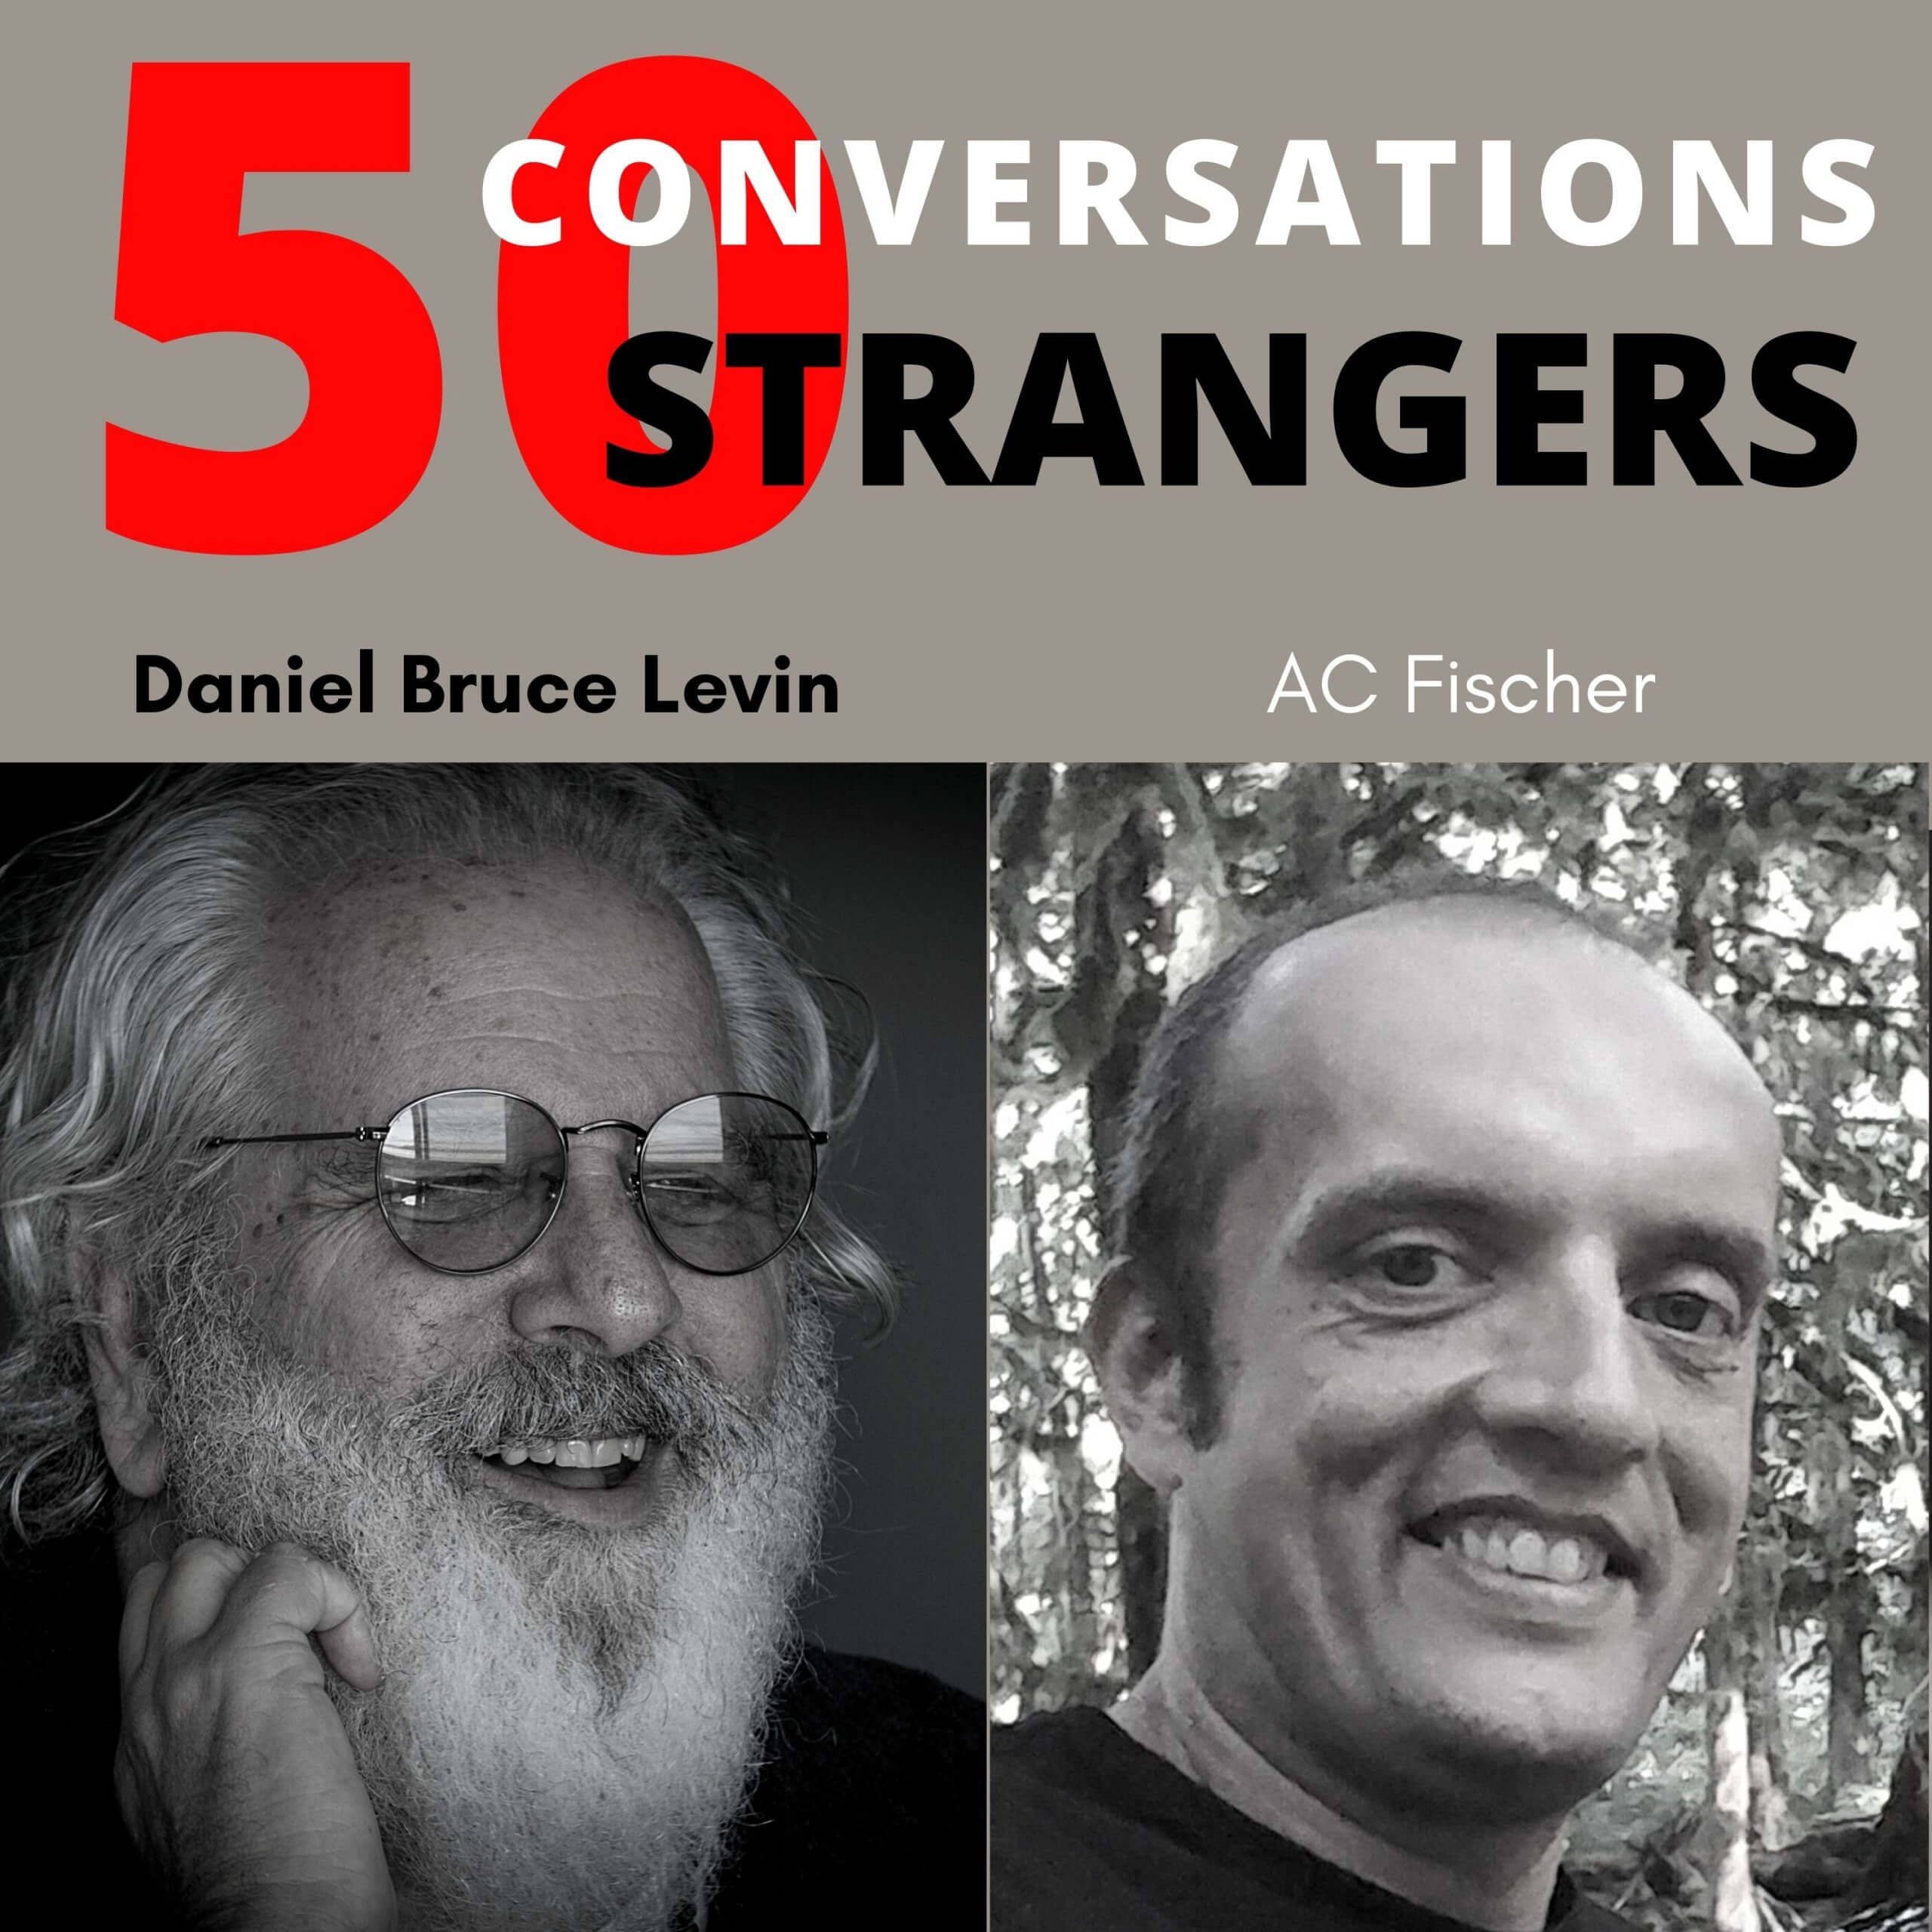 50 Conversations with 50 Strangers with AC Fischer